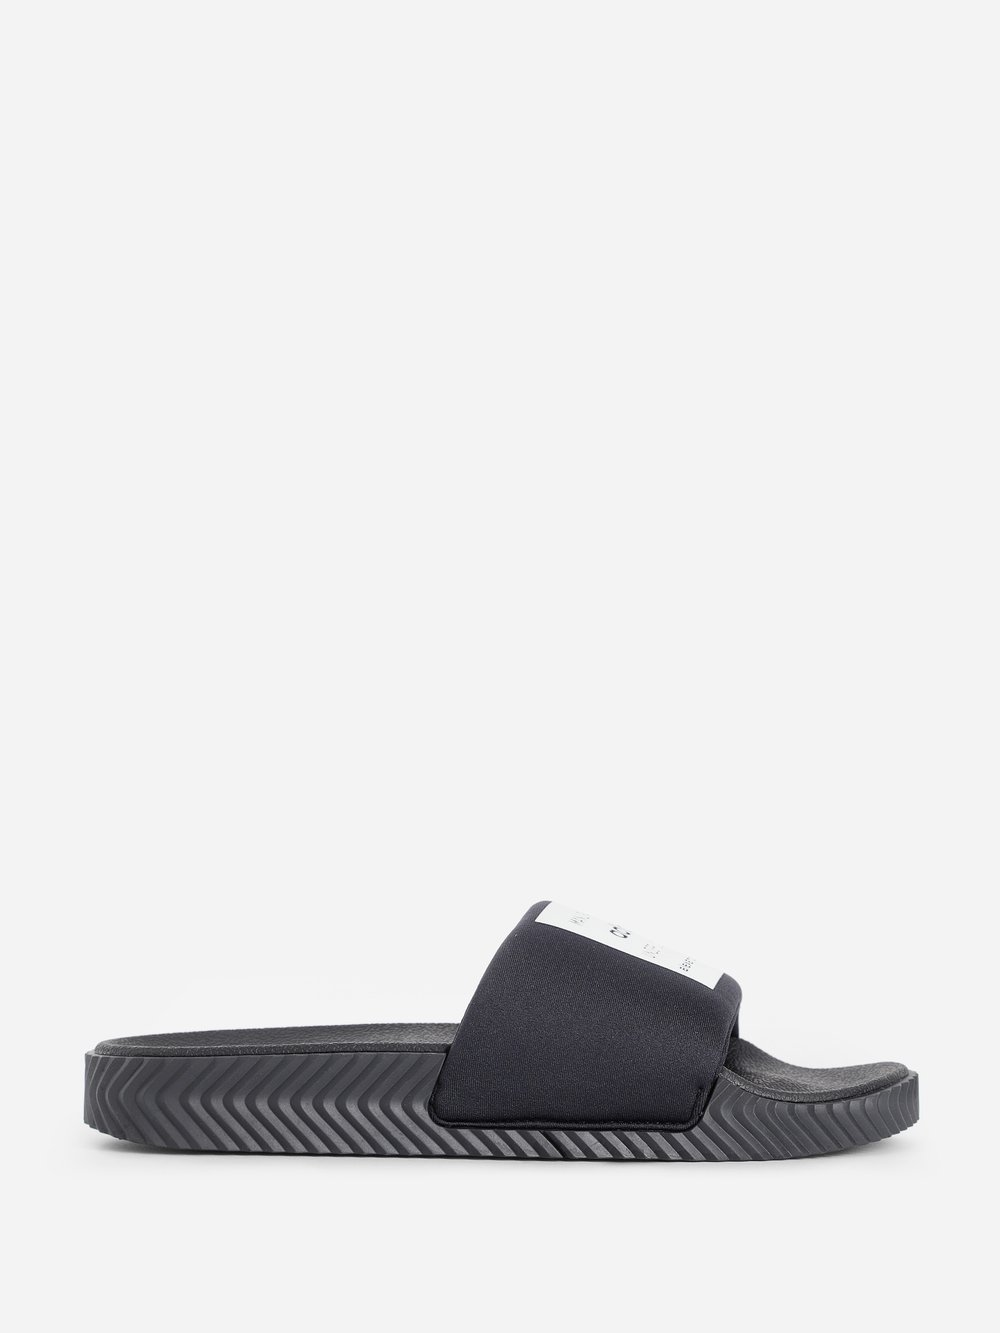 Image of Adidas by Alexander Wang Sandals